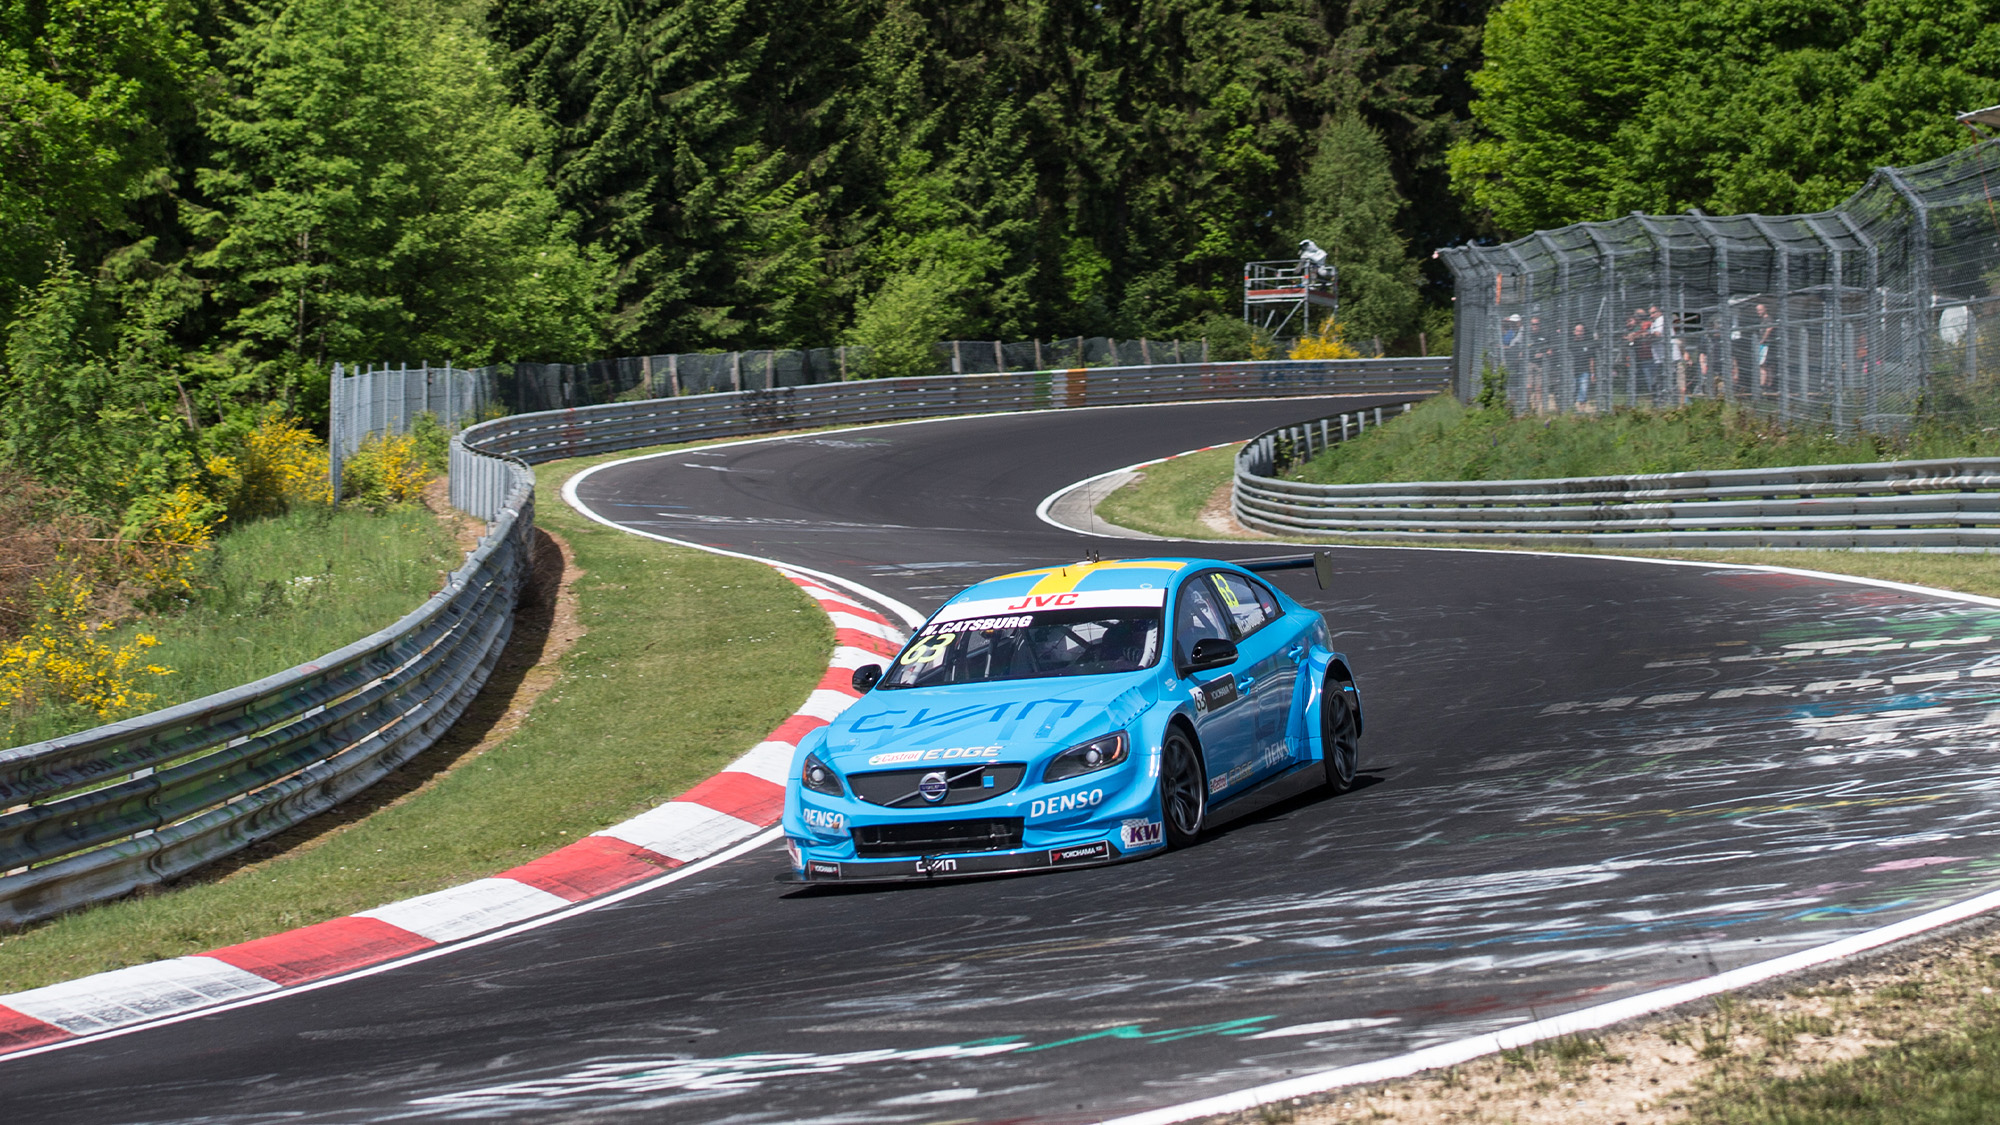 Polestar of Nicky Catsburg at the Nurburgring in 2017